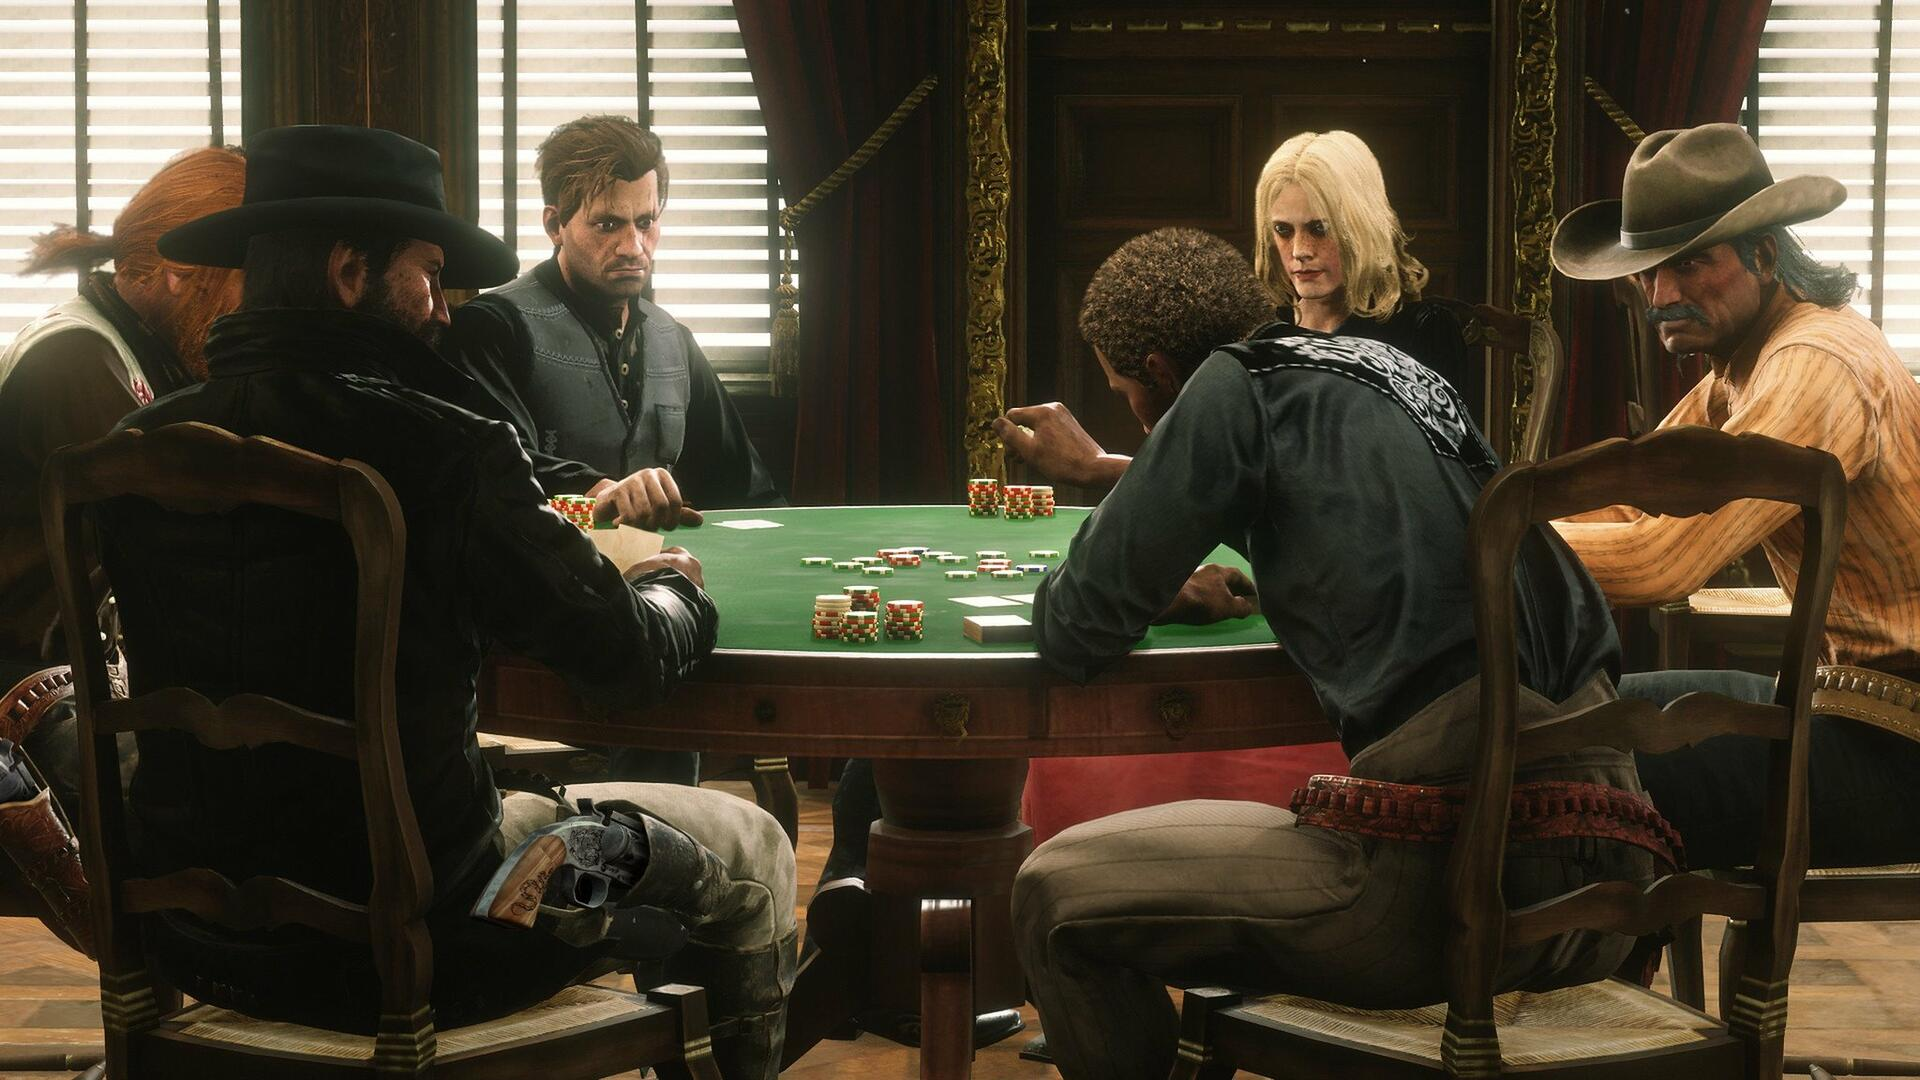 Red Dead Online Poker - Private Game, Tips to Win, Matchmaking